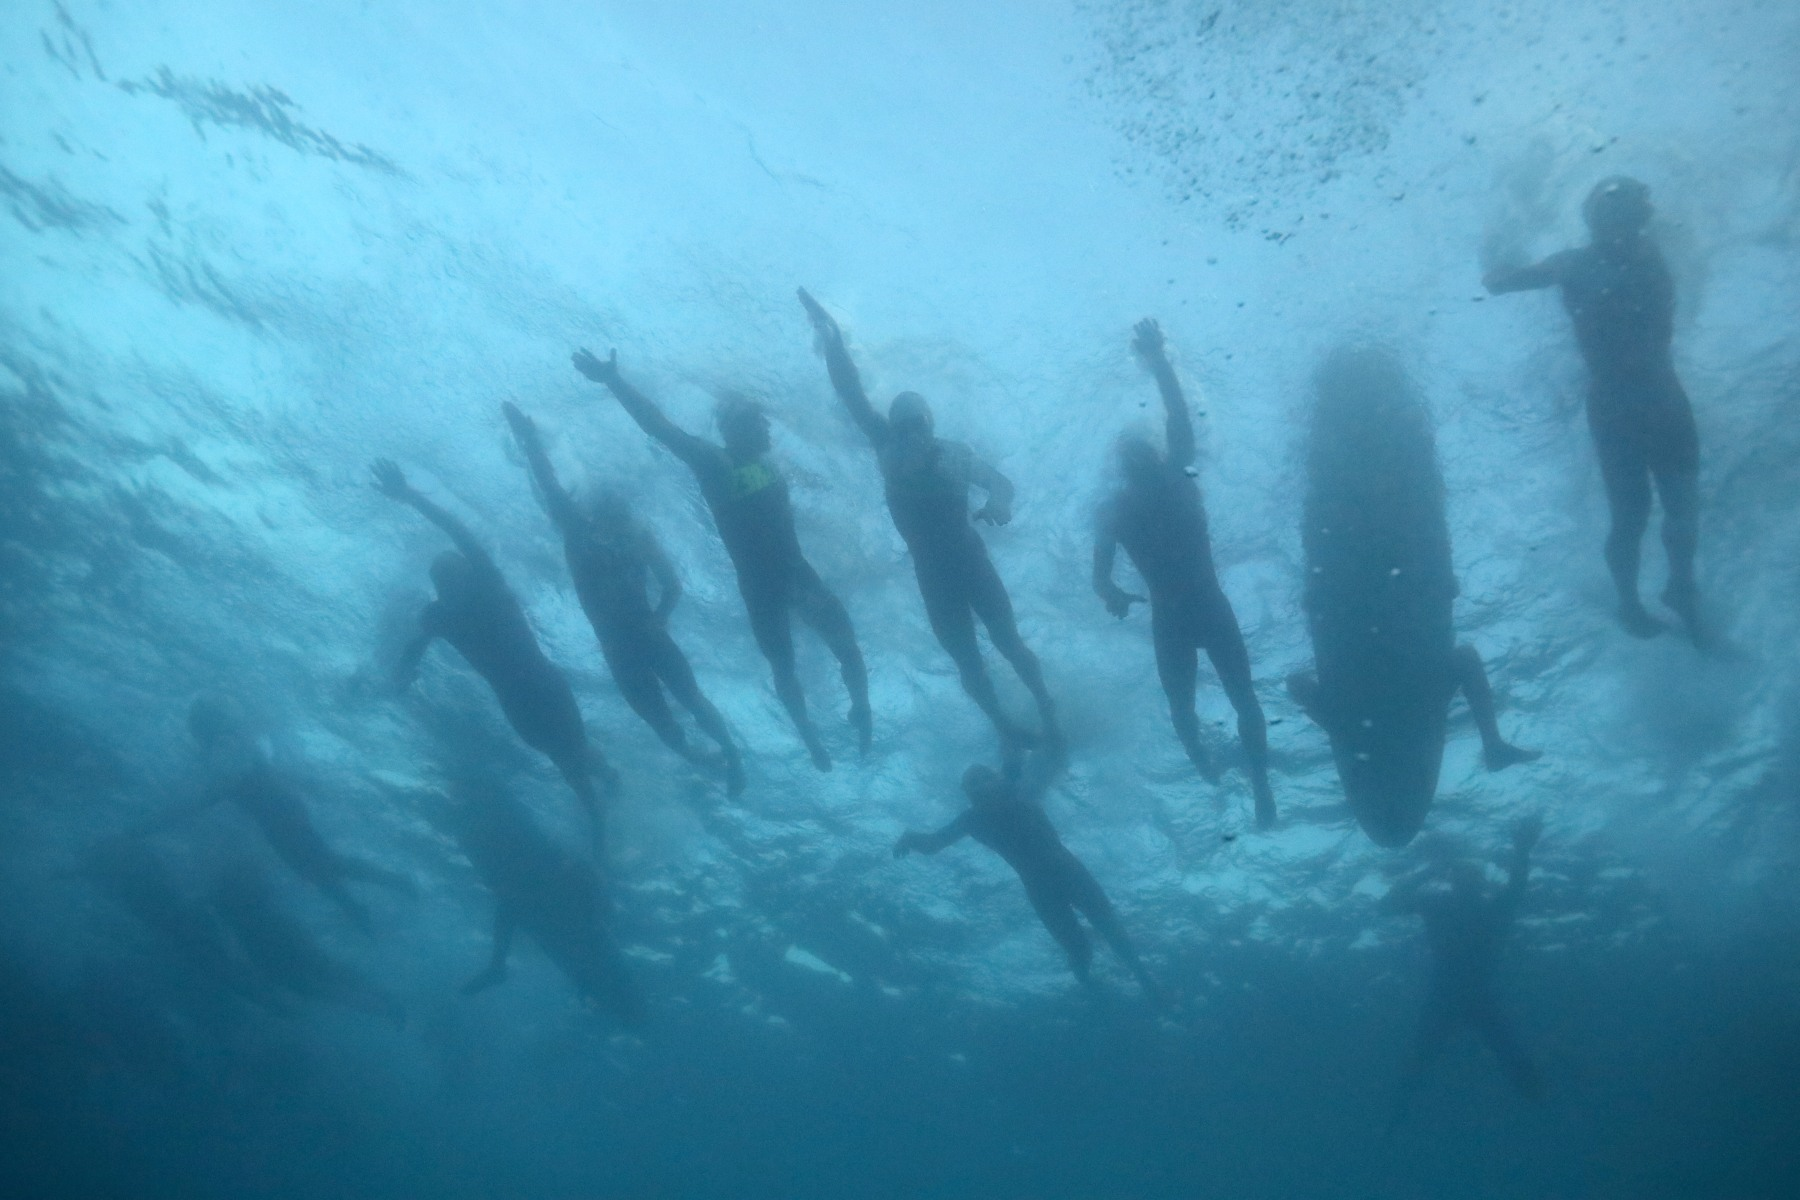 KAILUA KONA, HI - OCTOBER 14: Swimmers compete during the IRONMAN World Championship on October 14, 2017 in Kailua Kona, Hawaii. (Photo by Tom Pennington/Getty Images for IRONMAN)